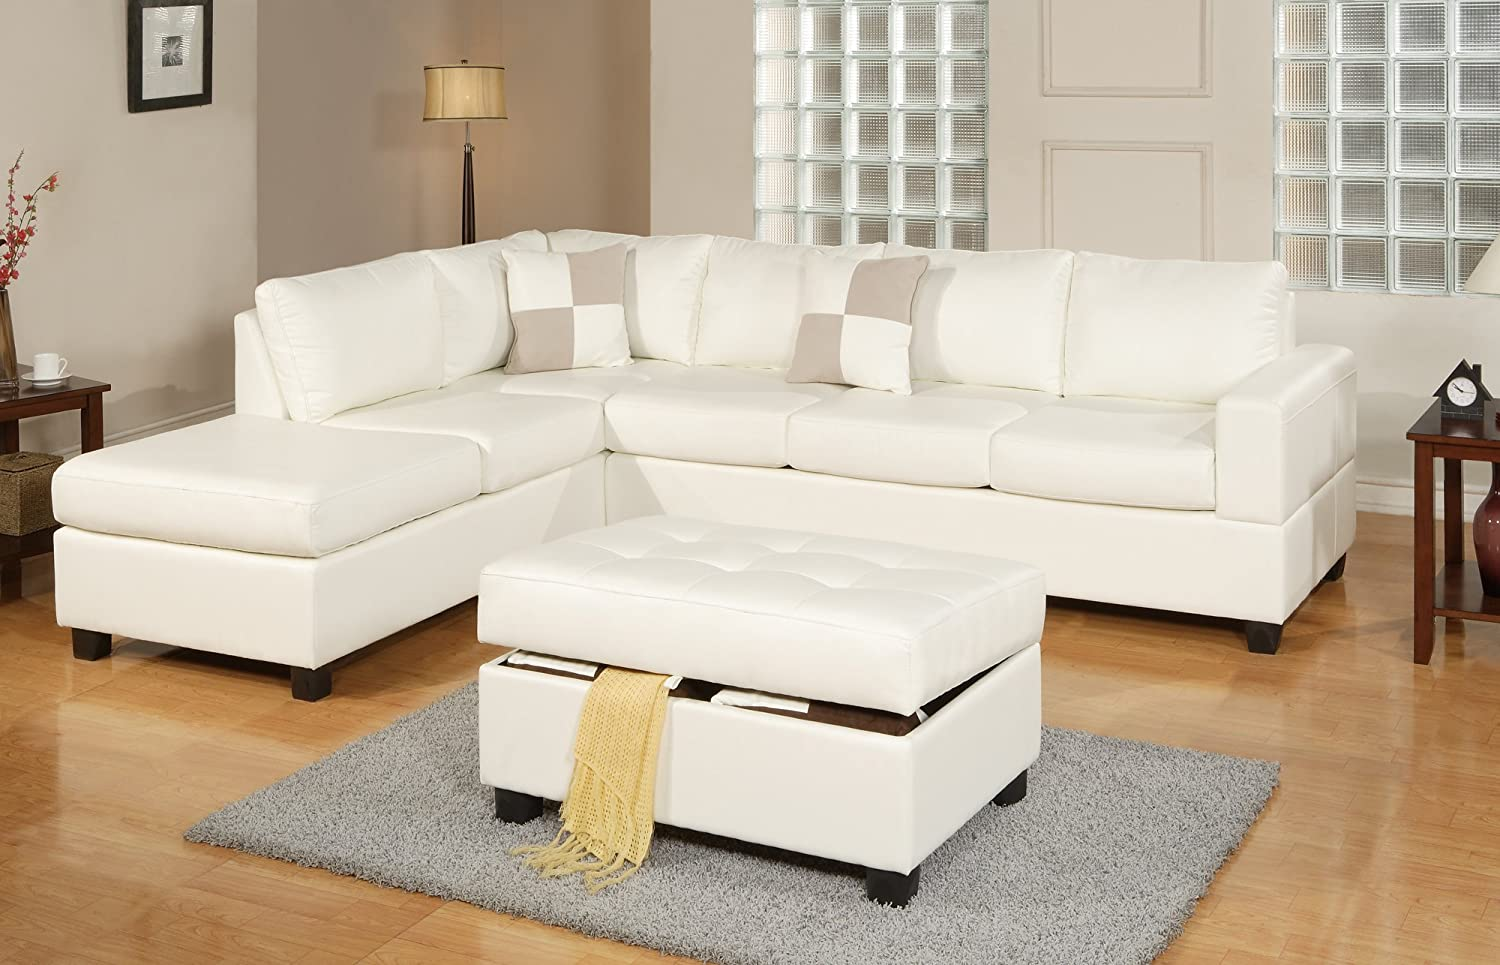 Genial Amazon.com: BOBKONA Soft Touch Reversible Bonded Leather Match 3 Piece  Sectional Sofa Set, White: Kitchen U0026 Dining